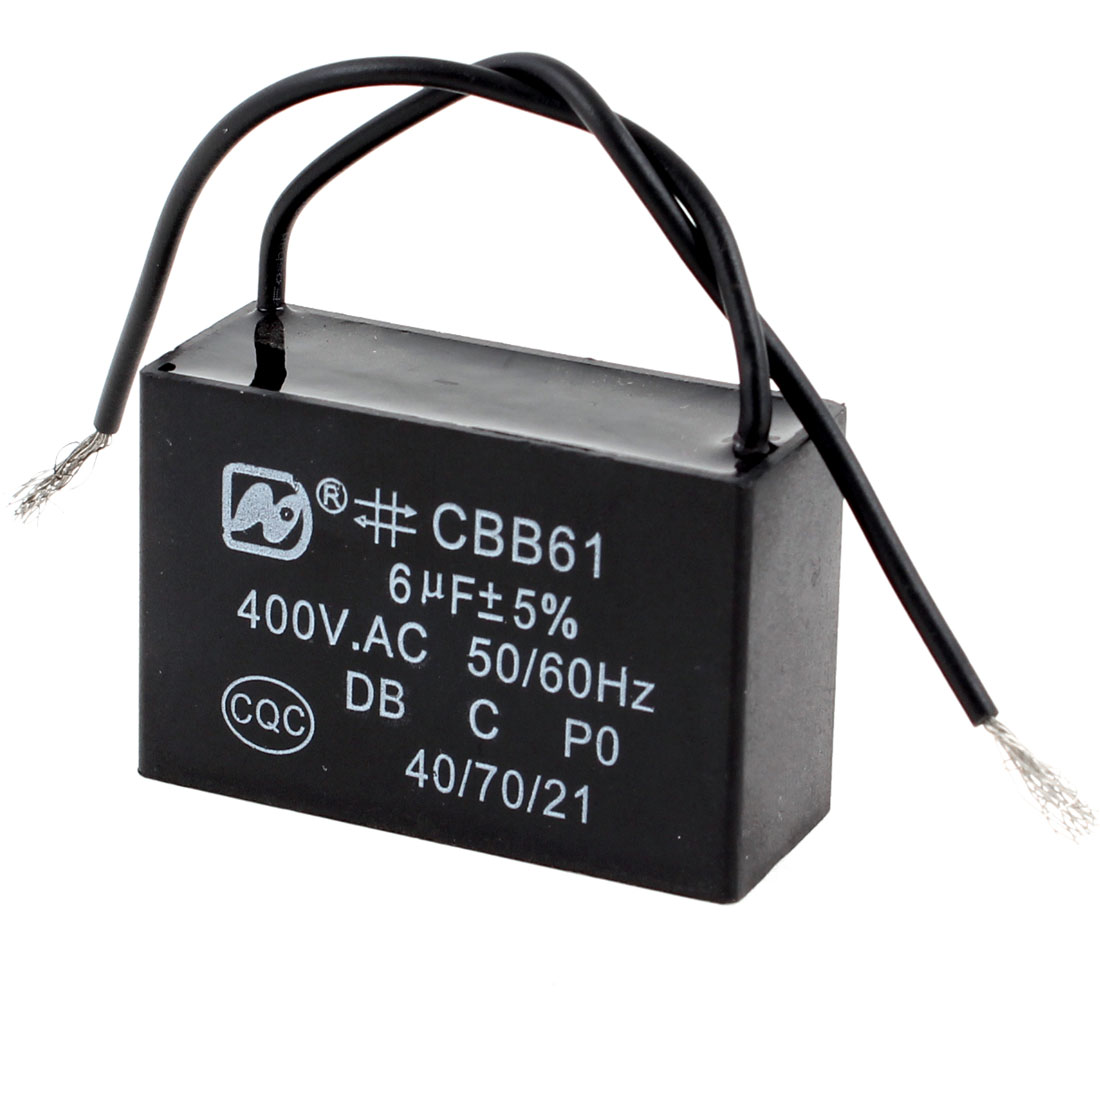 Polypropylene Film Rectangle Motor Capacitor Model CBB61 6uF AC 400V